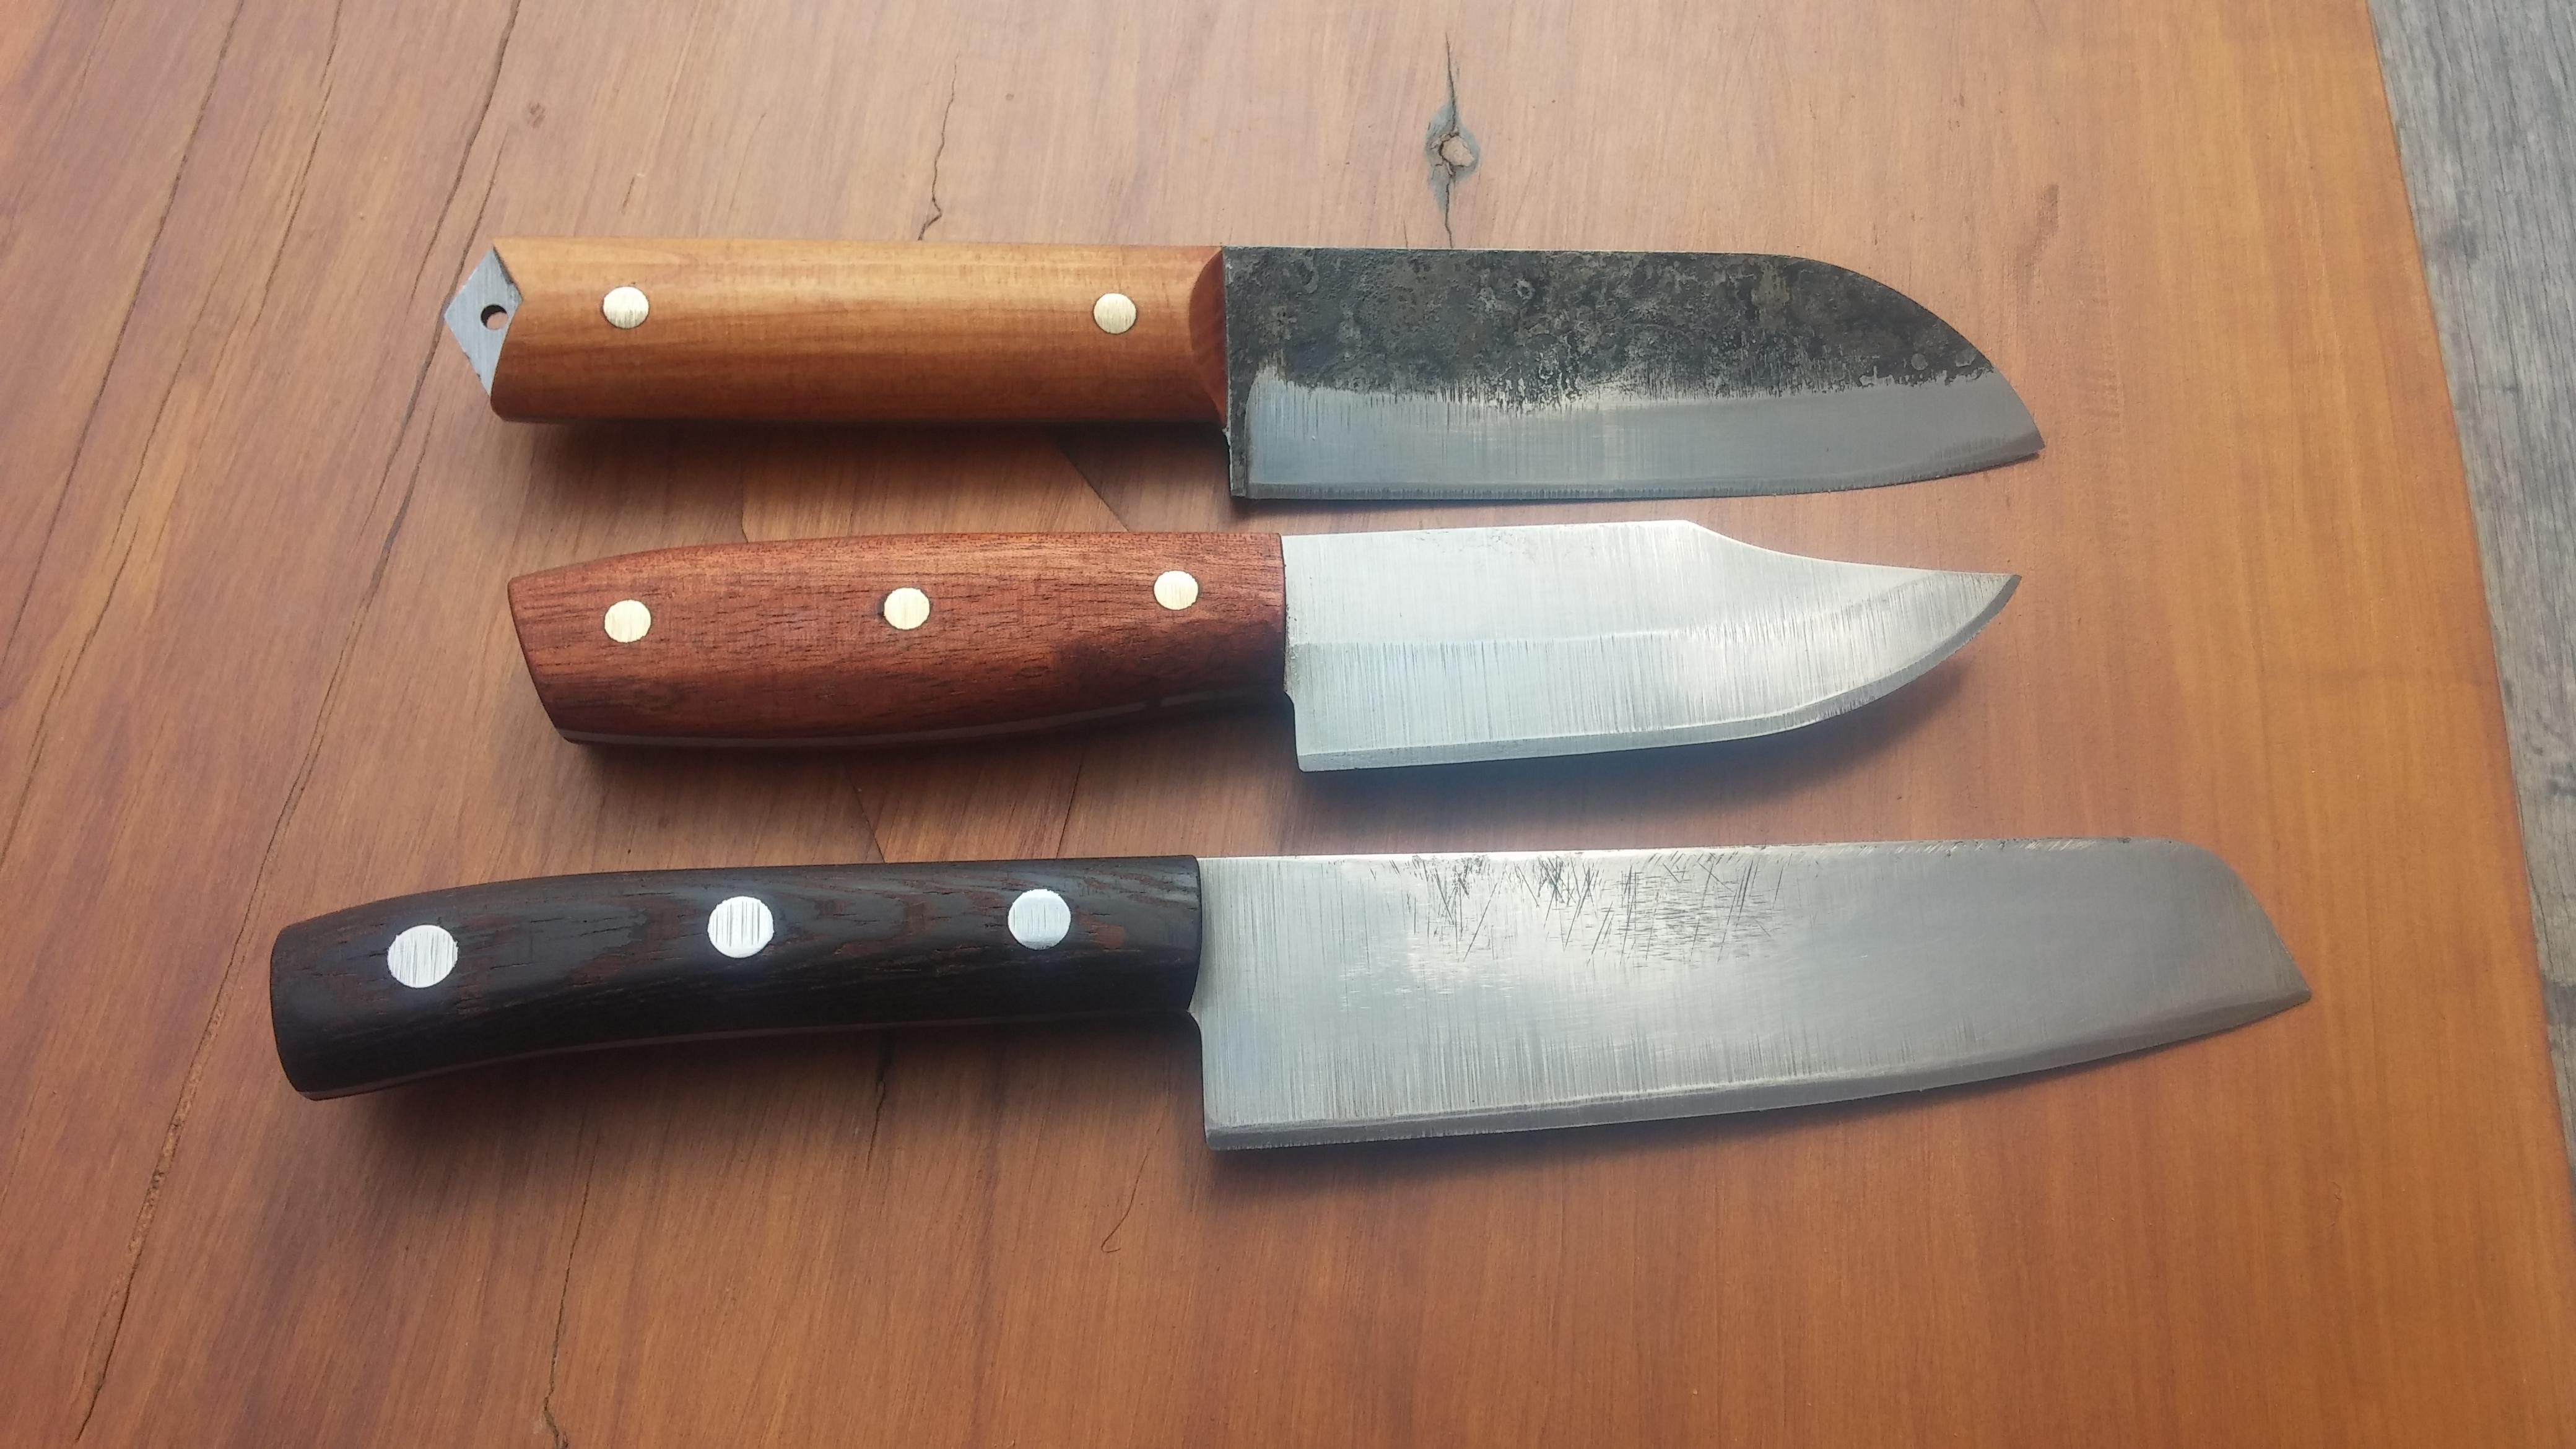 Kind Chefs Knives Use What Do